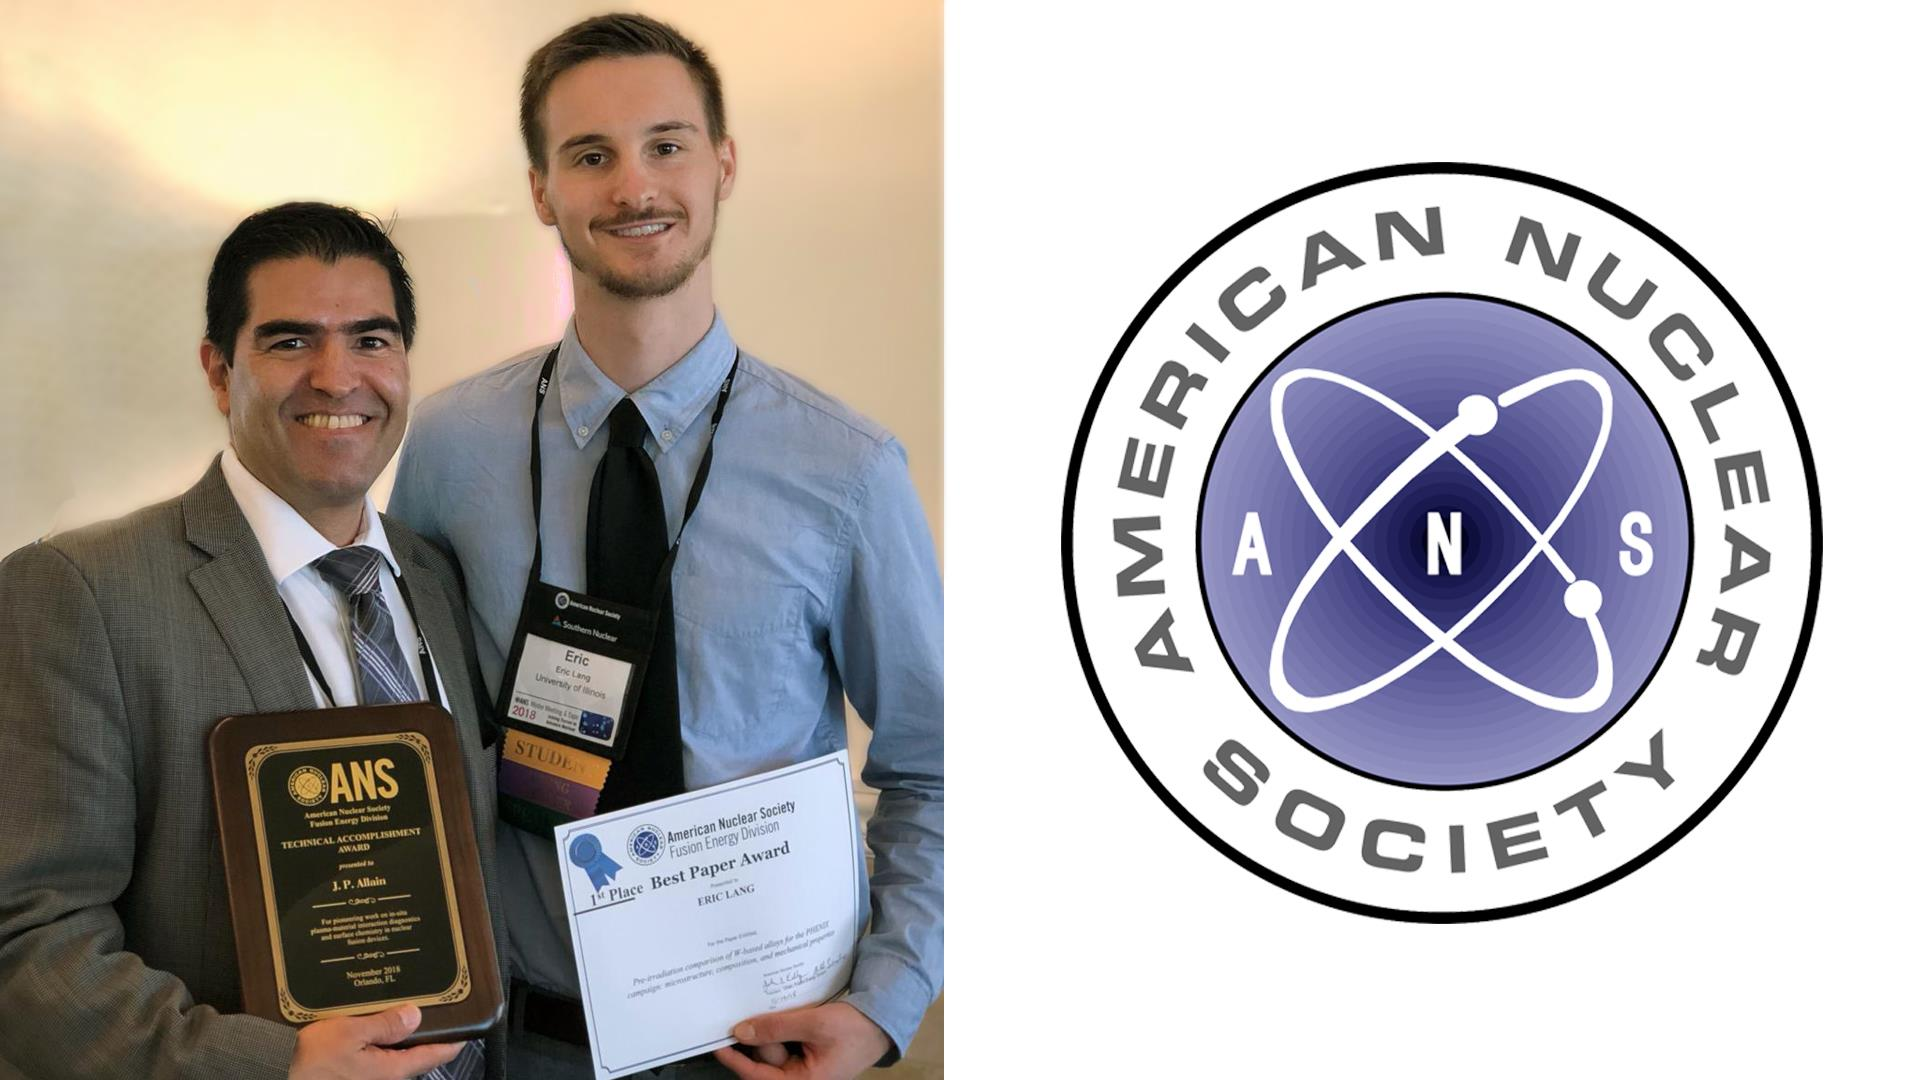 Eric Lang awarded Best Student Paper at national fusion energy meeting